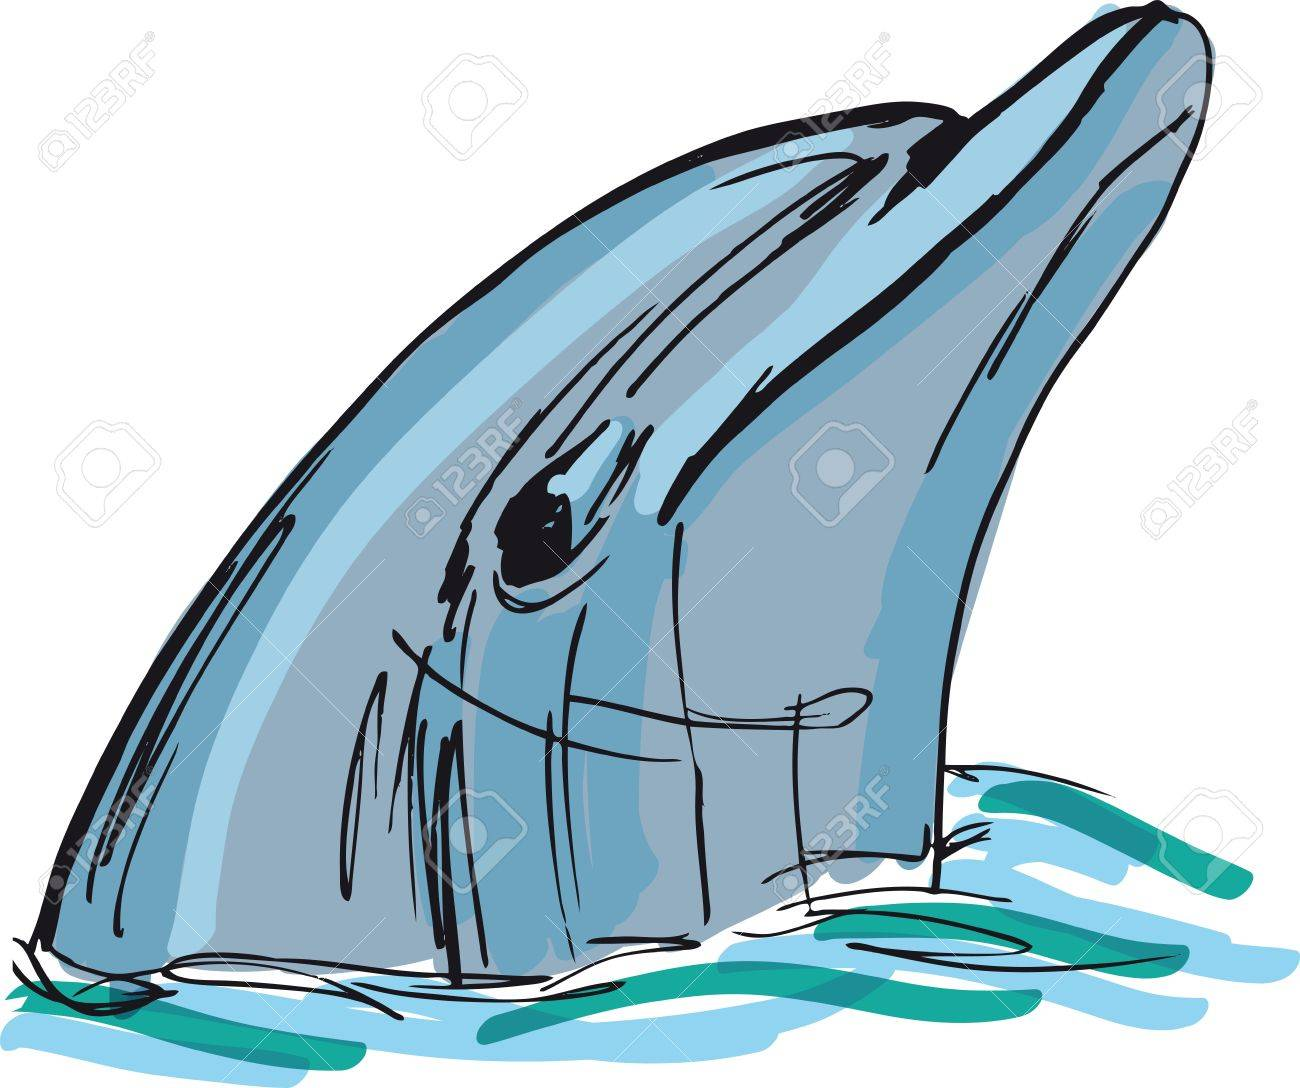 sketch of dolphin face illustration royalty free cliparts